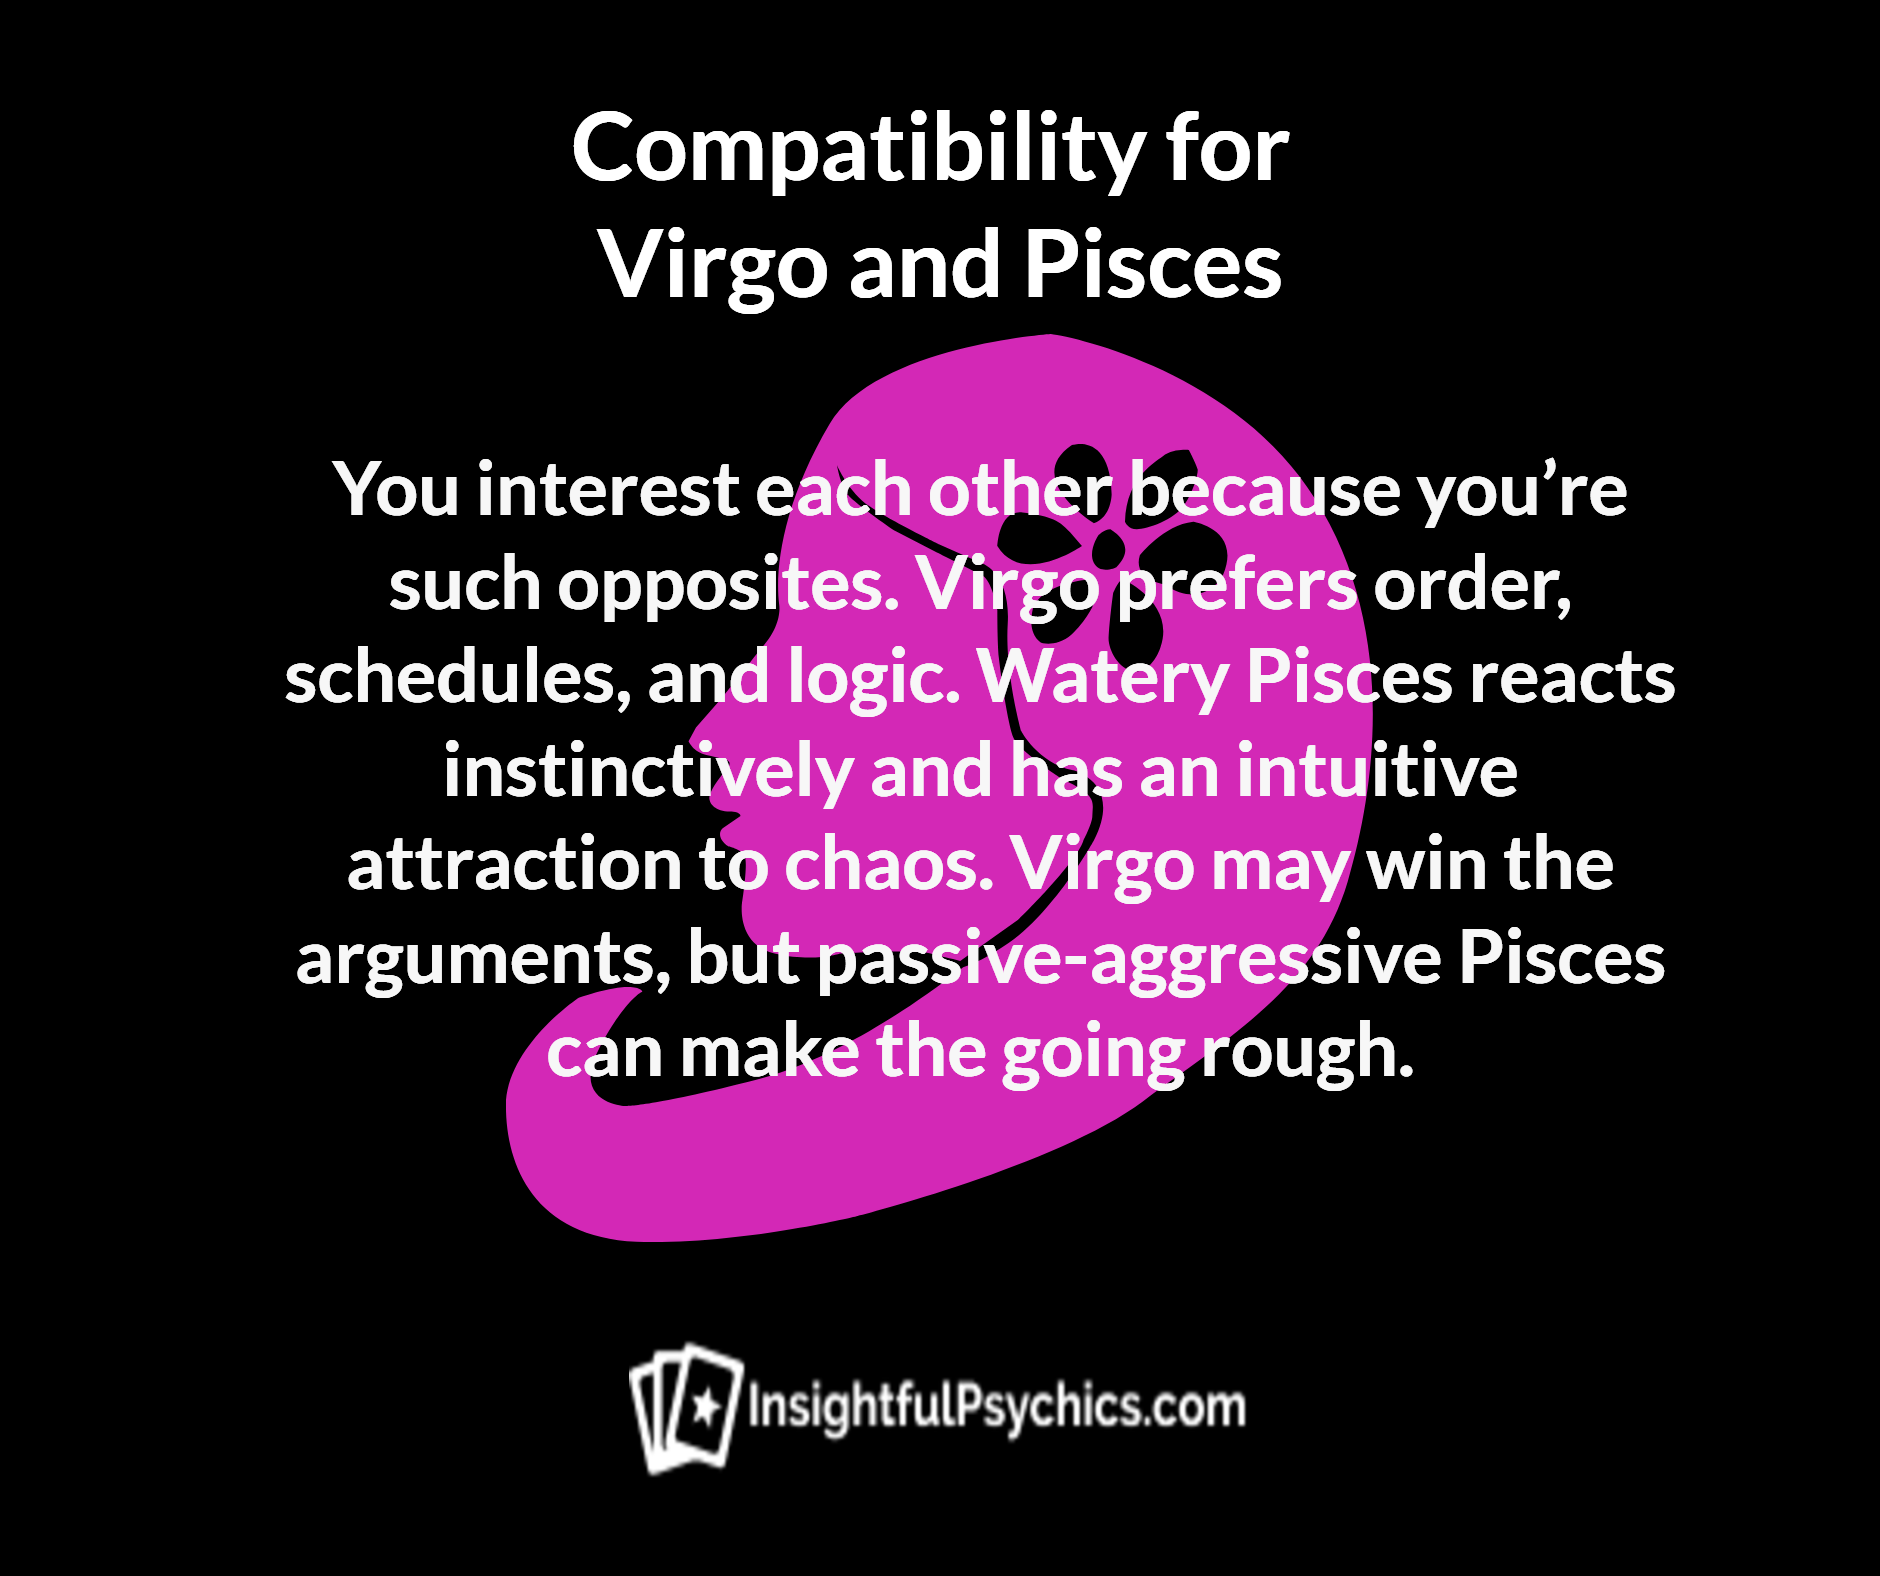 Is Virgo and Pisces compatible? 88